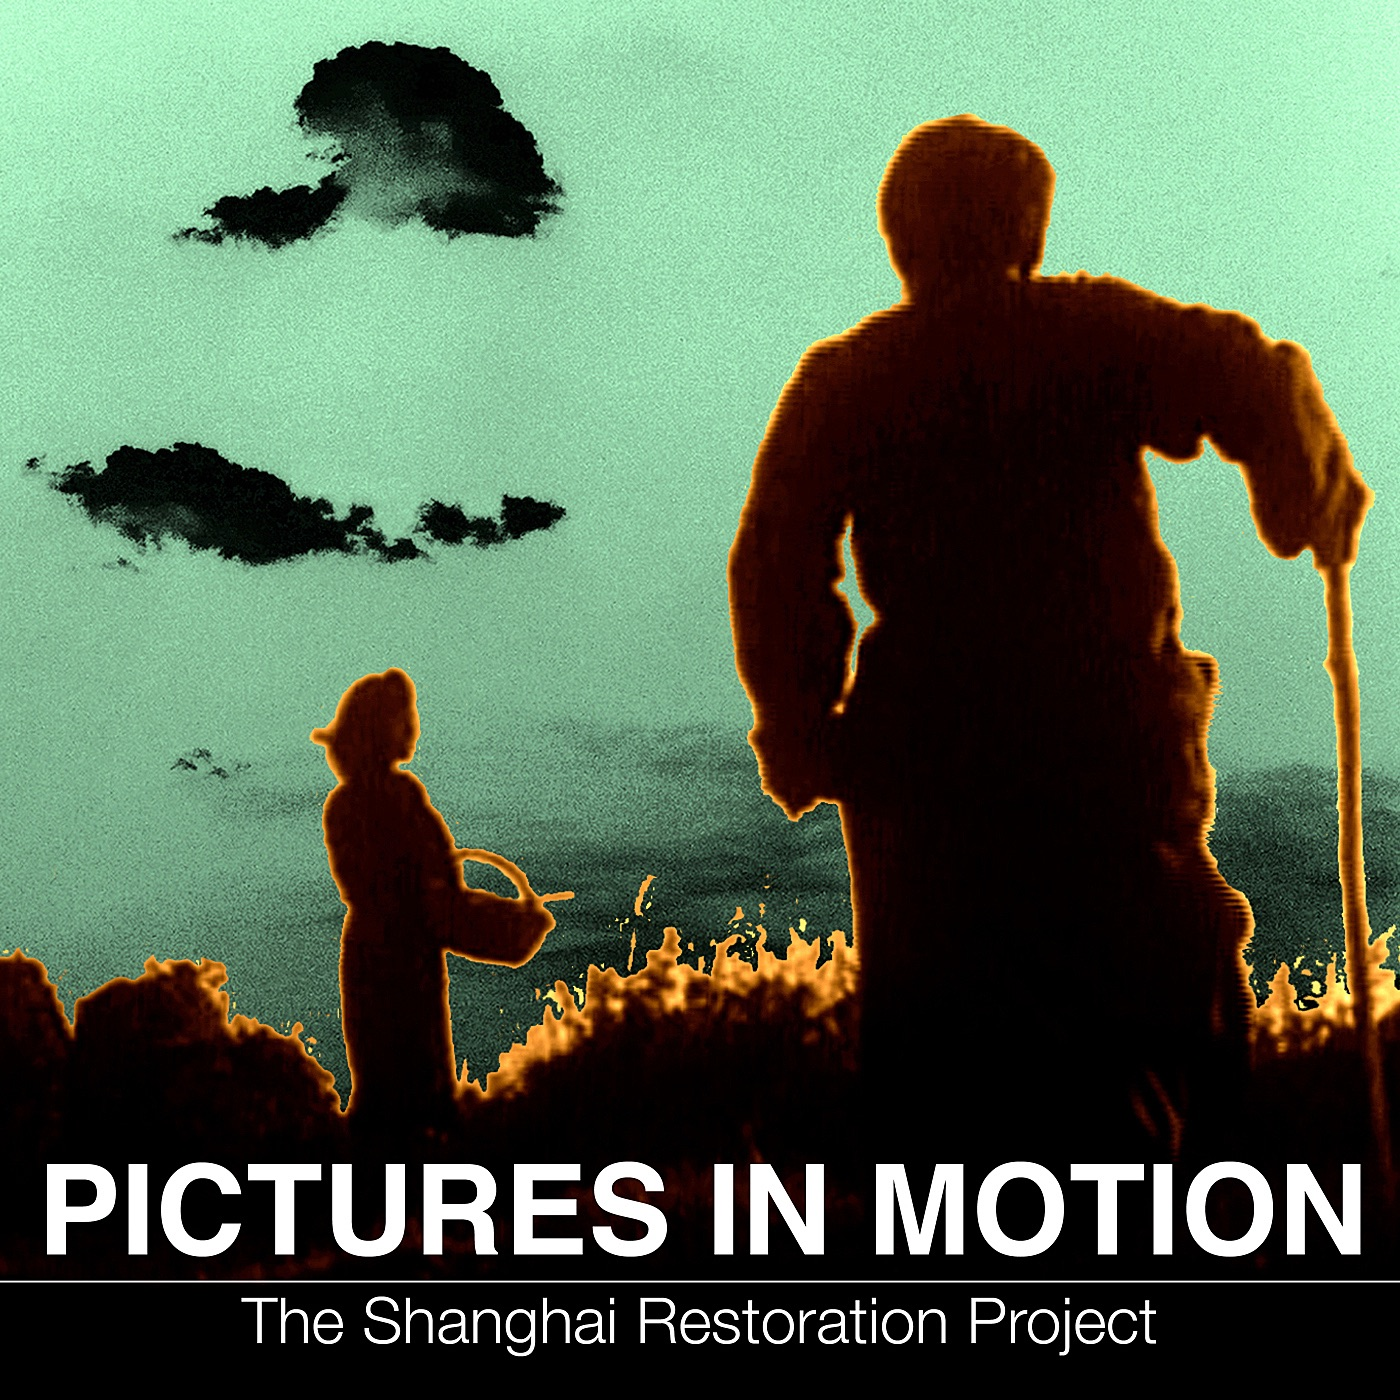 The Shanghai Restoration Project - Pictures in Motion